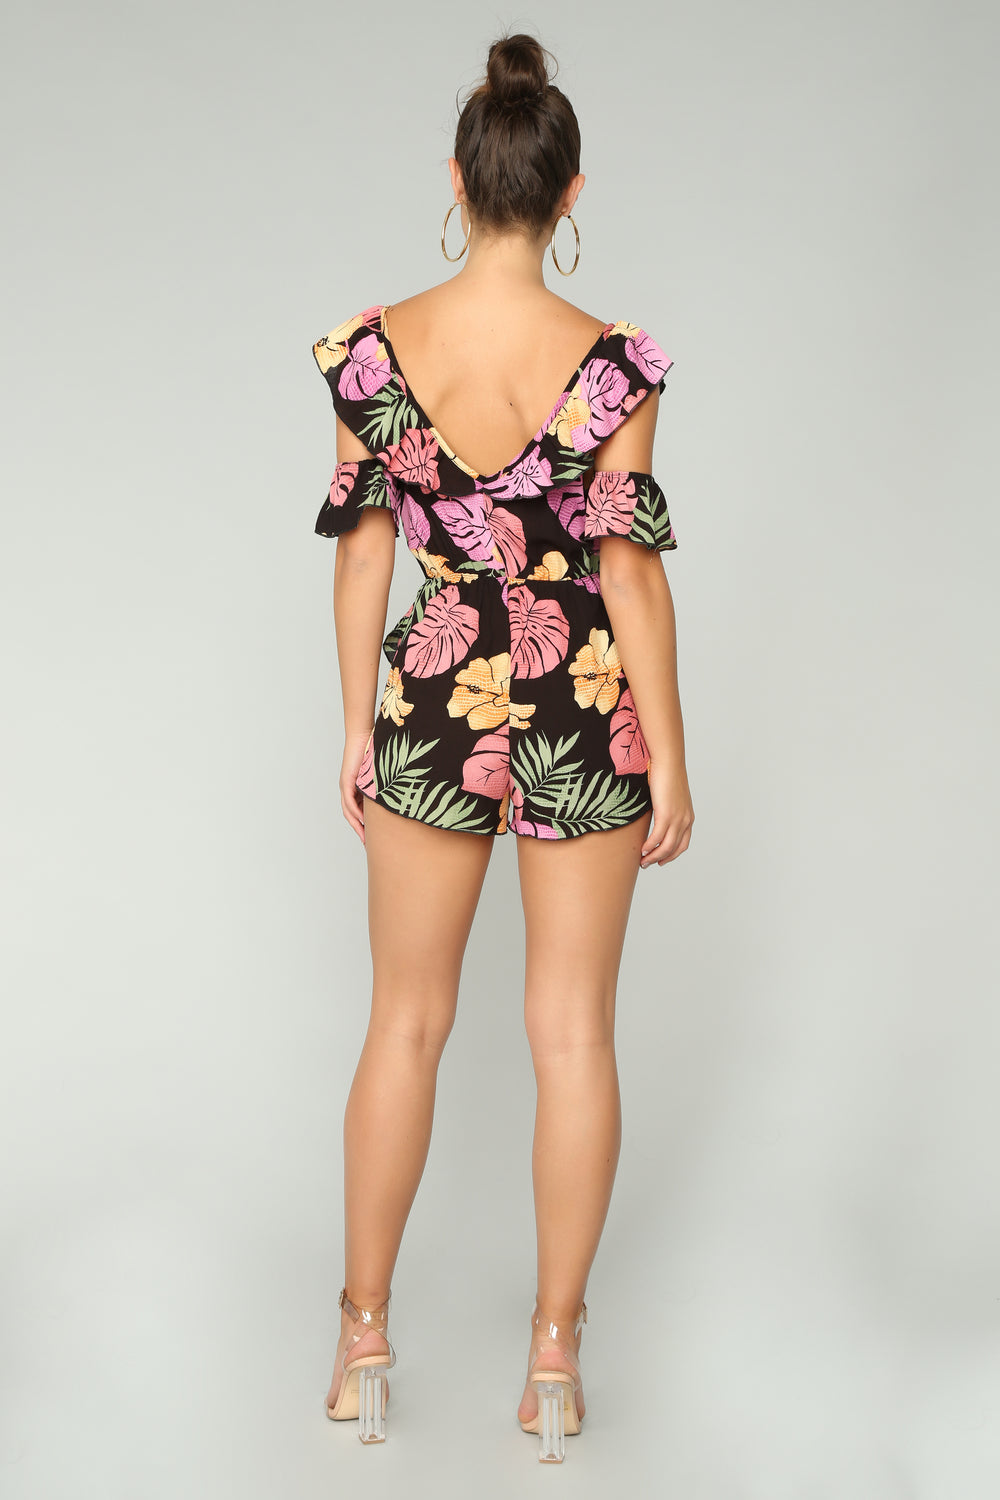 Out By The Beach Tropical Romper - Black/Multi